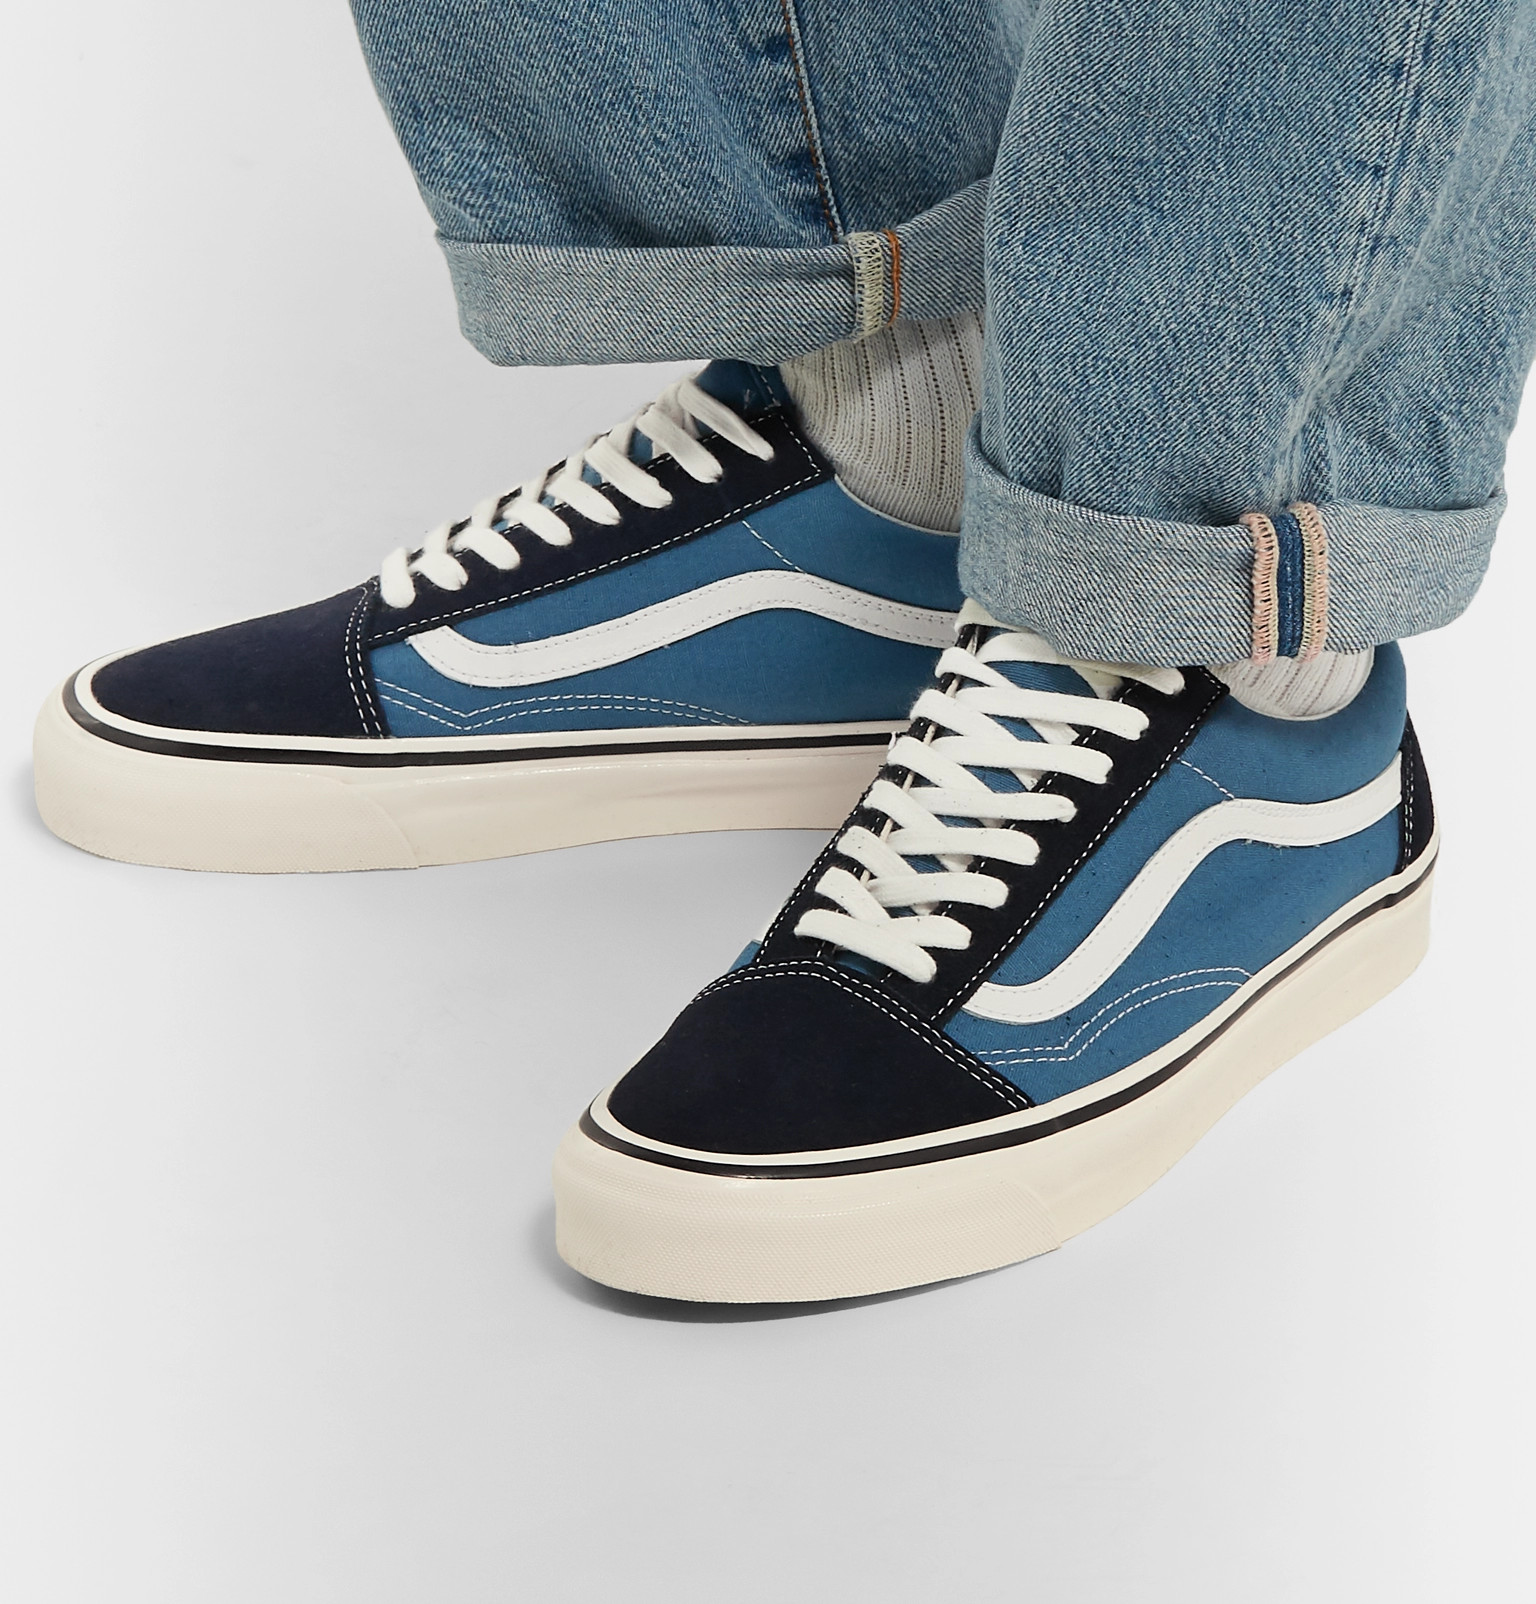 Very Goods | Vans Anaheim Factory UA Old Skool 36 DX